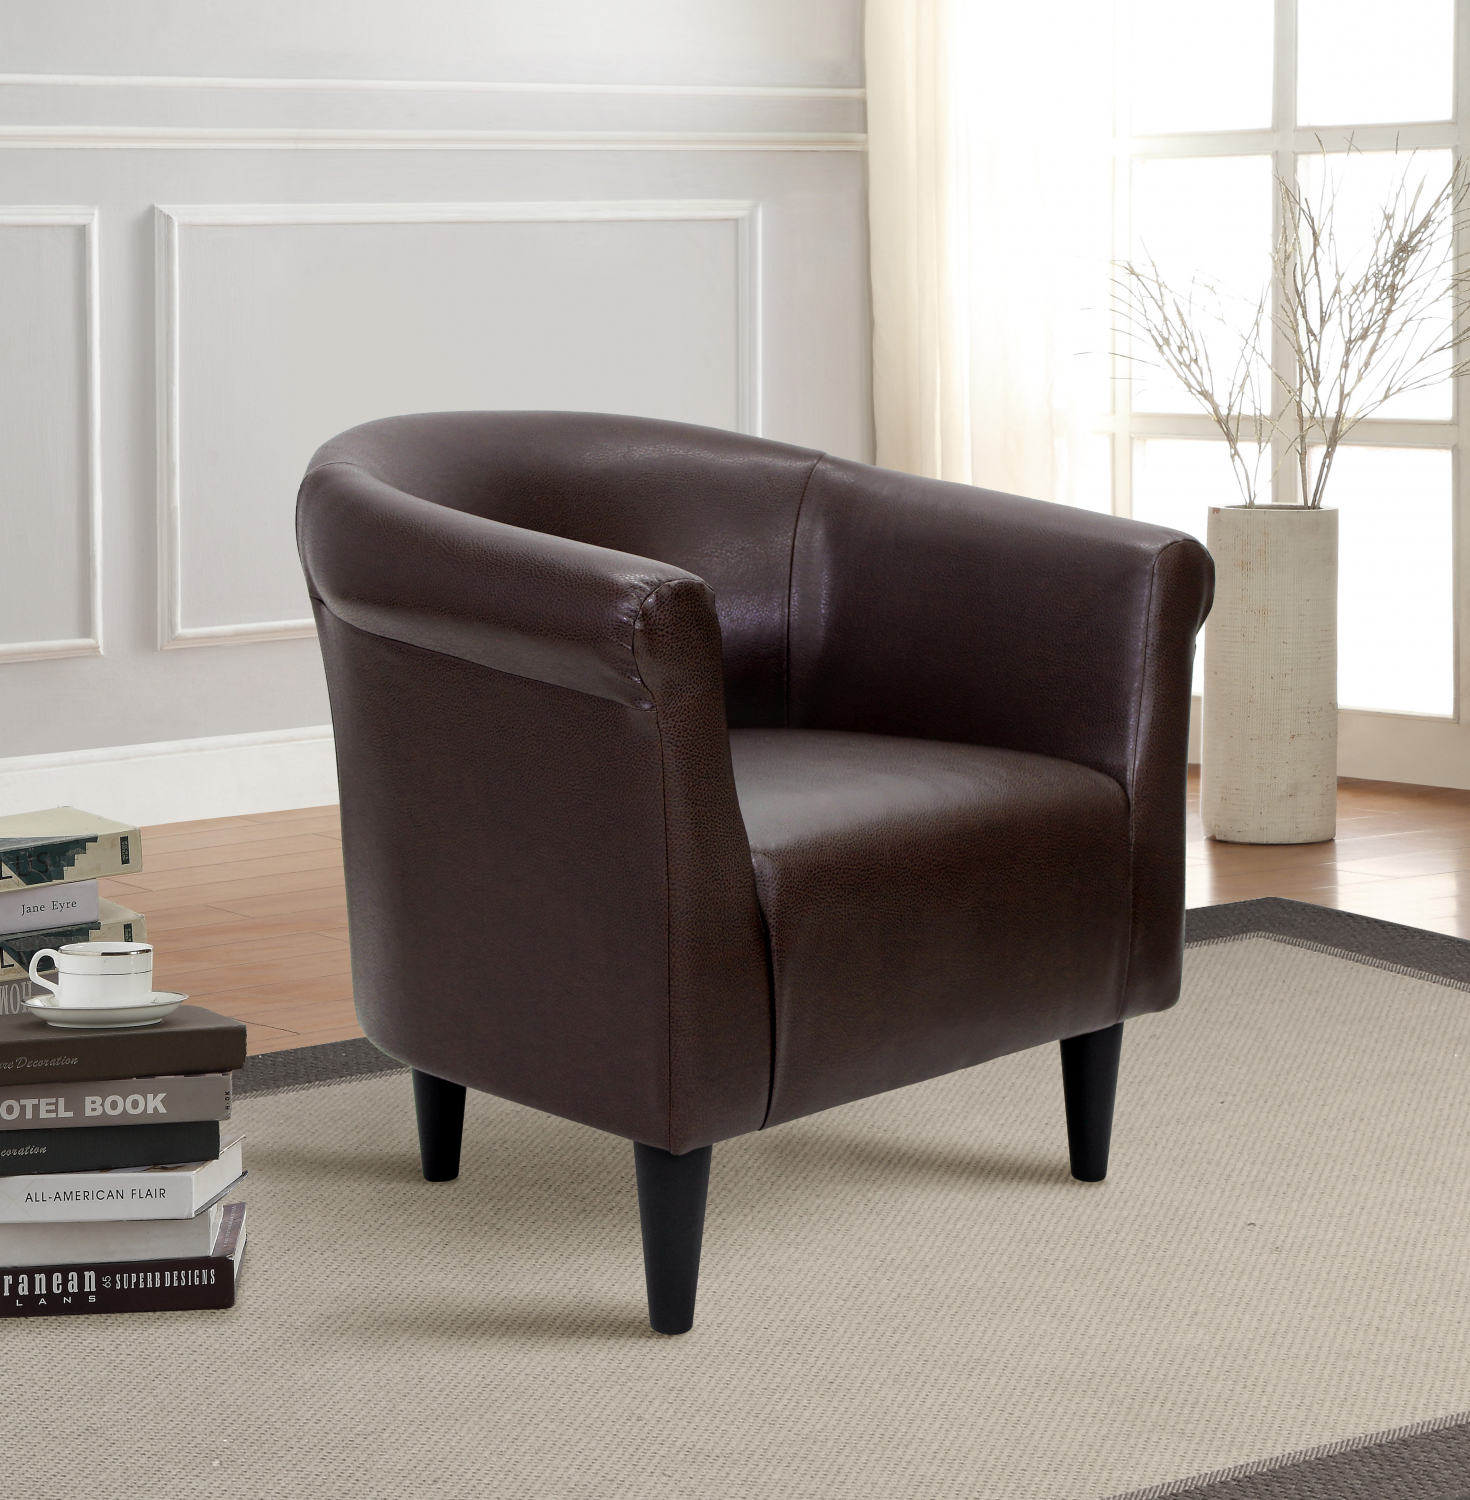 Details About Faux Leather Bucket Contemporary Accent Chair Living Room Furnitures Brown New